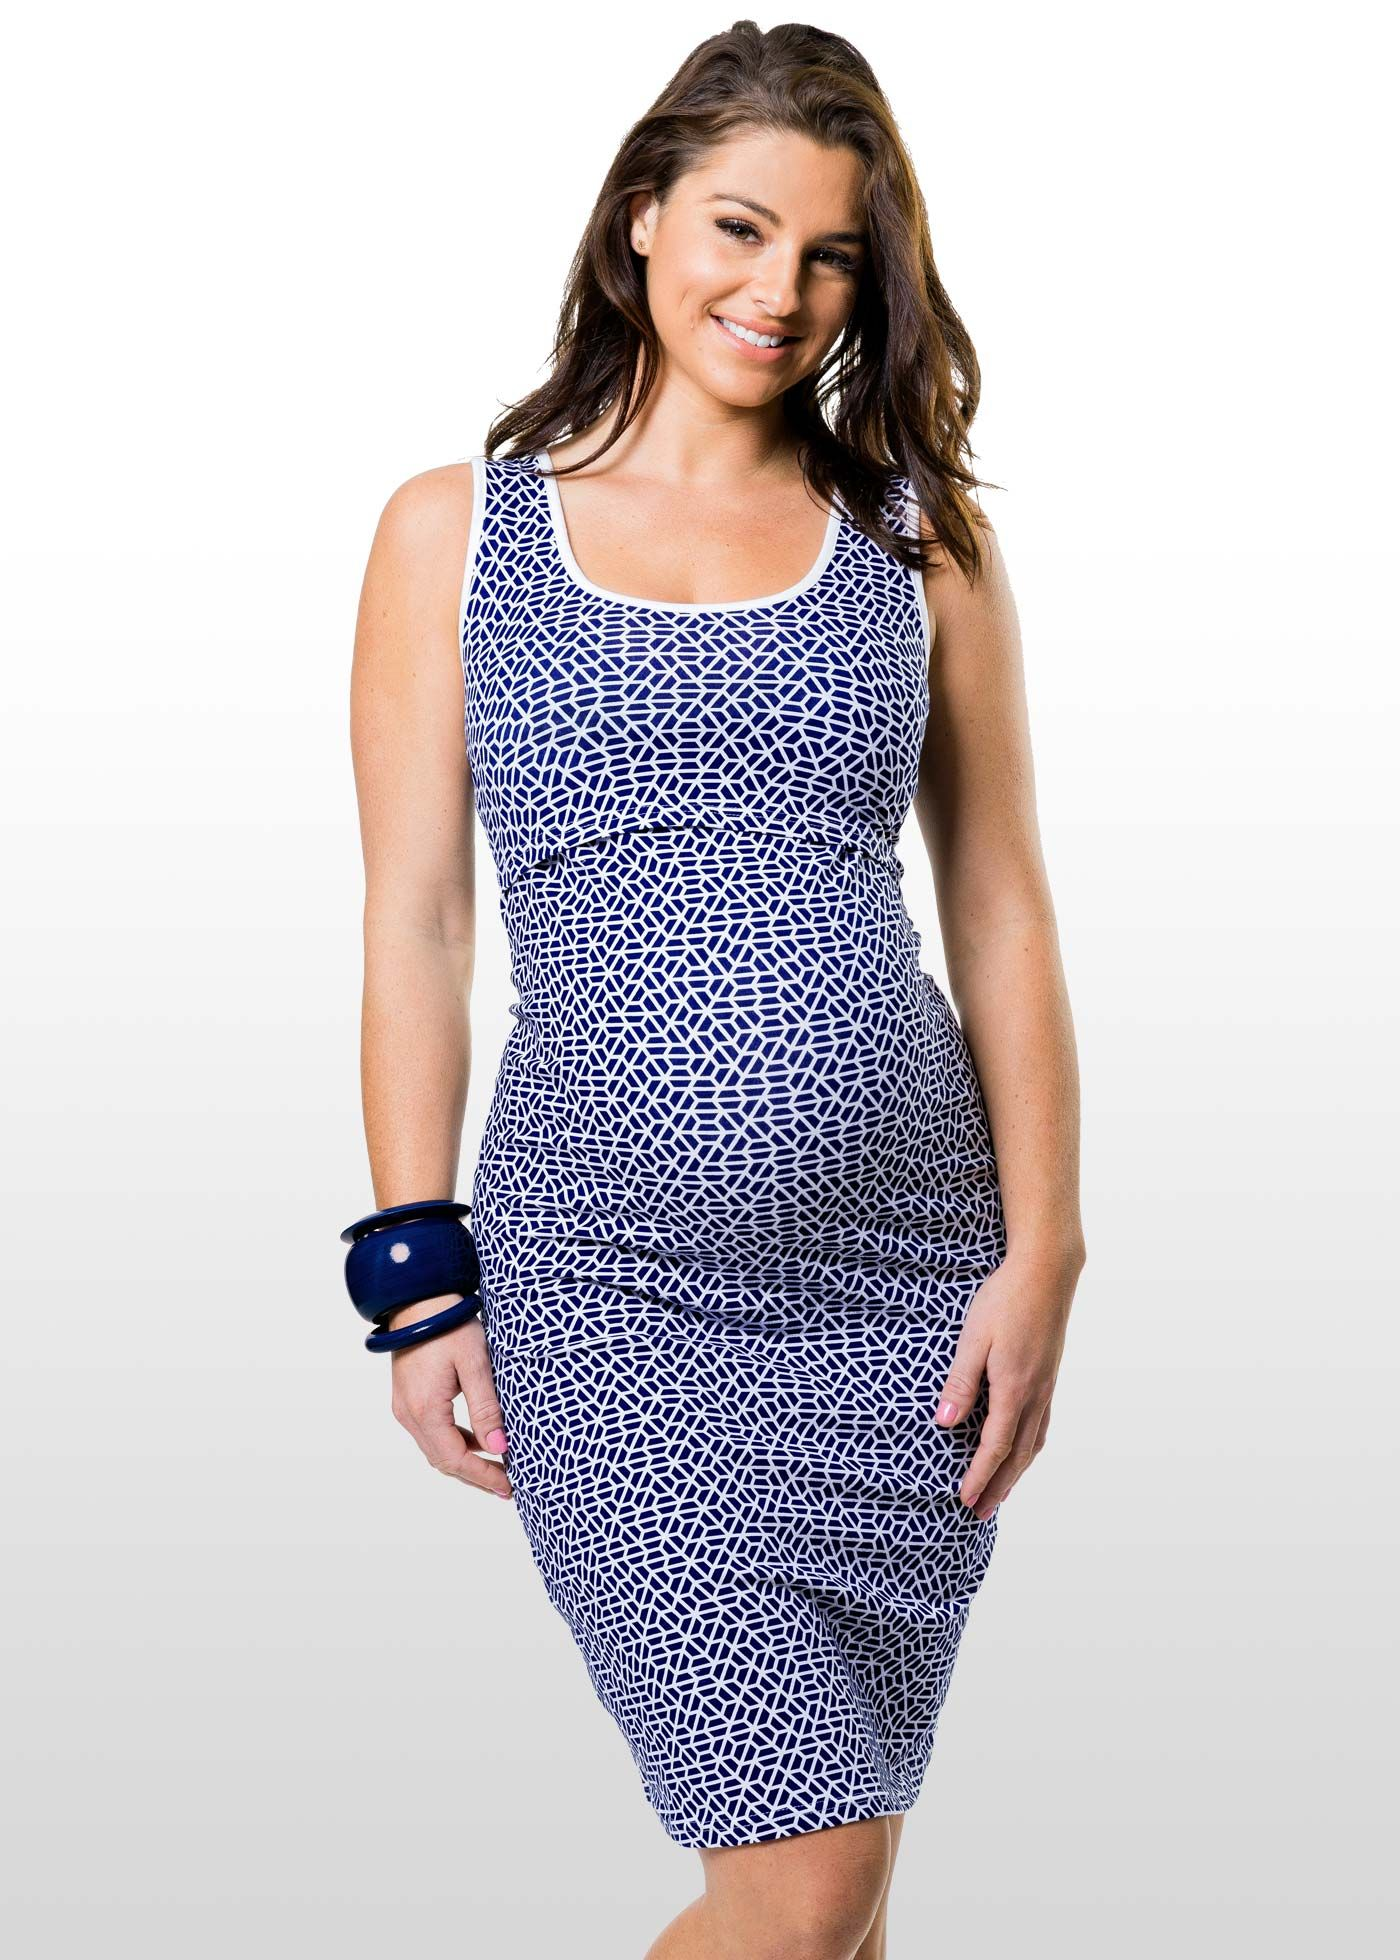 30b4311504212 Plus Size Women S Fitness Clothing. 23. Affordable formal maternity dresses  for baby shower